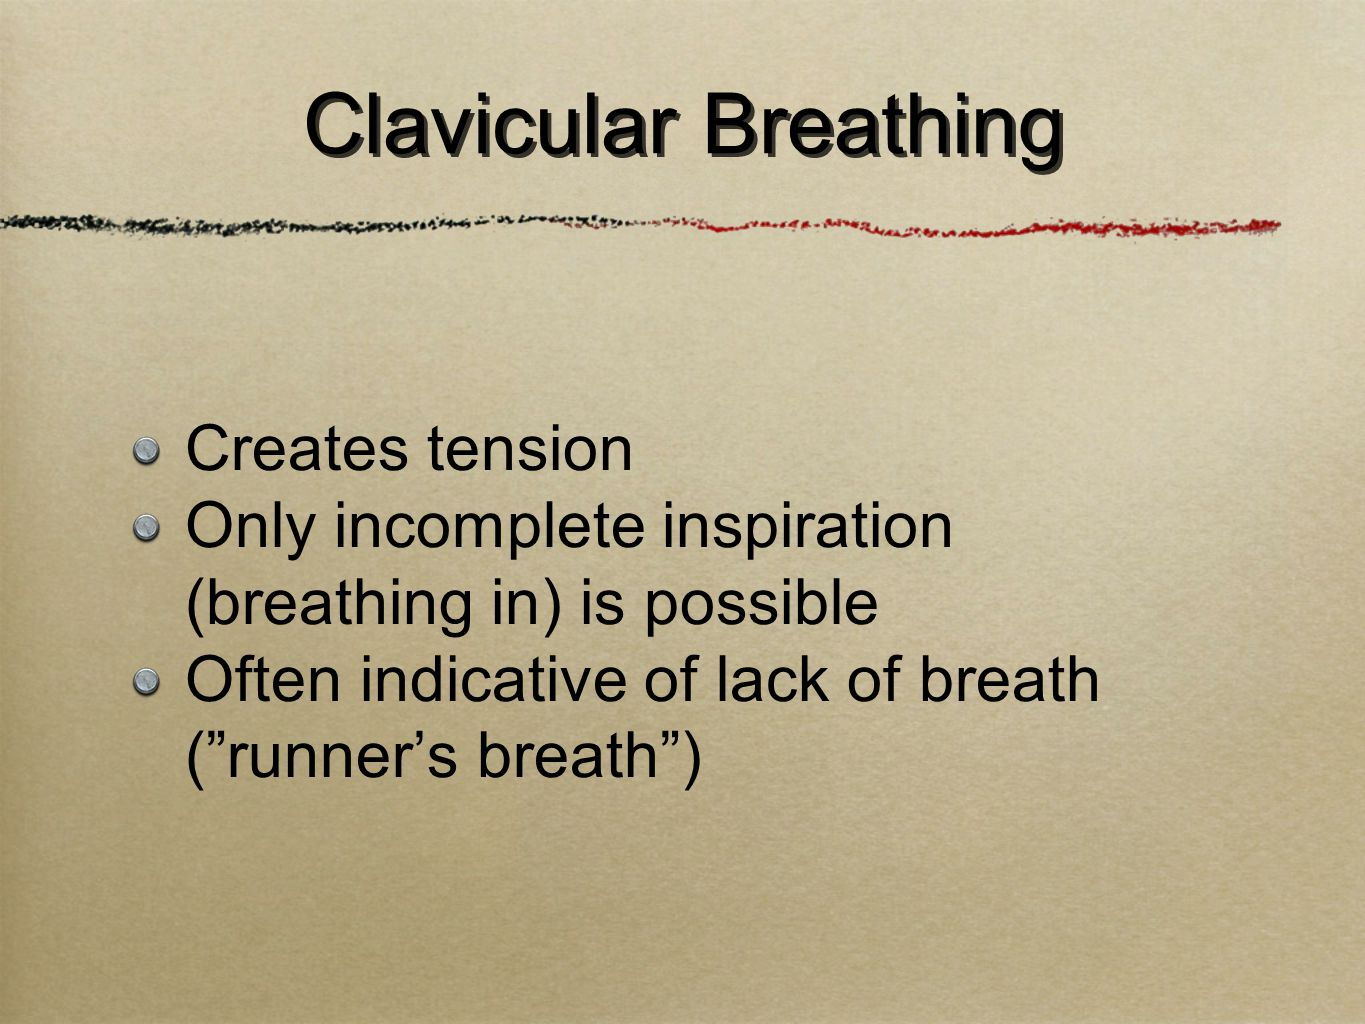 Creates tension Only incomplete inspiration (breathing in) is possible Often indicative of lack of breath ( runner's breath ) Clavicular Breathing